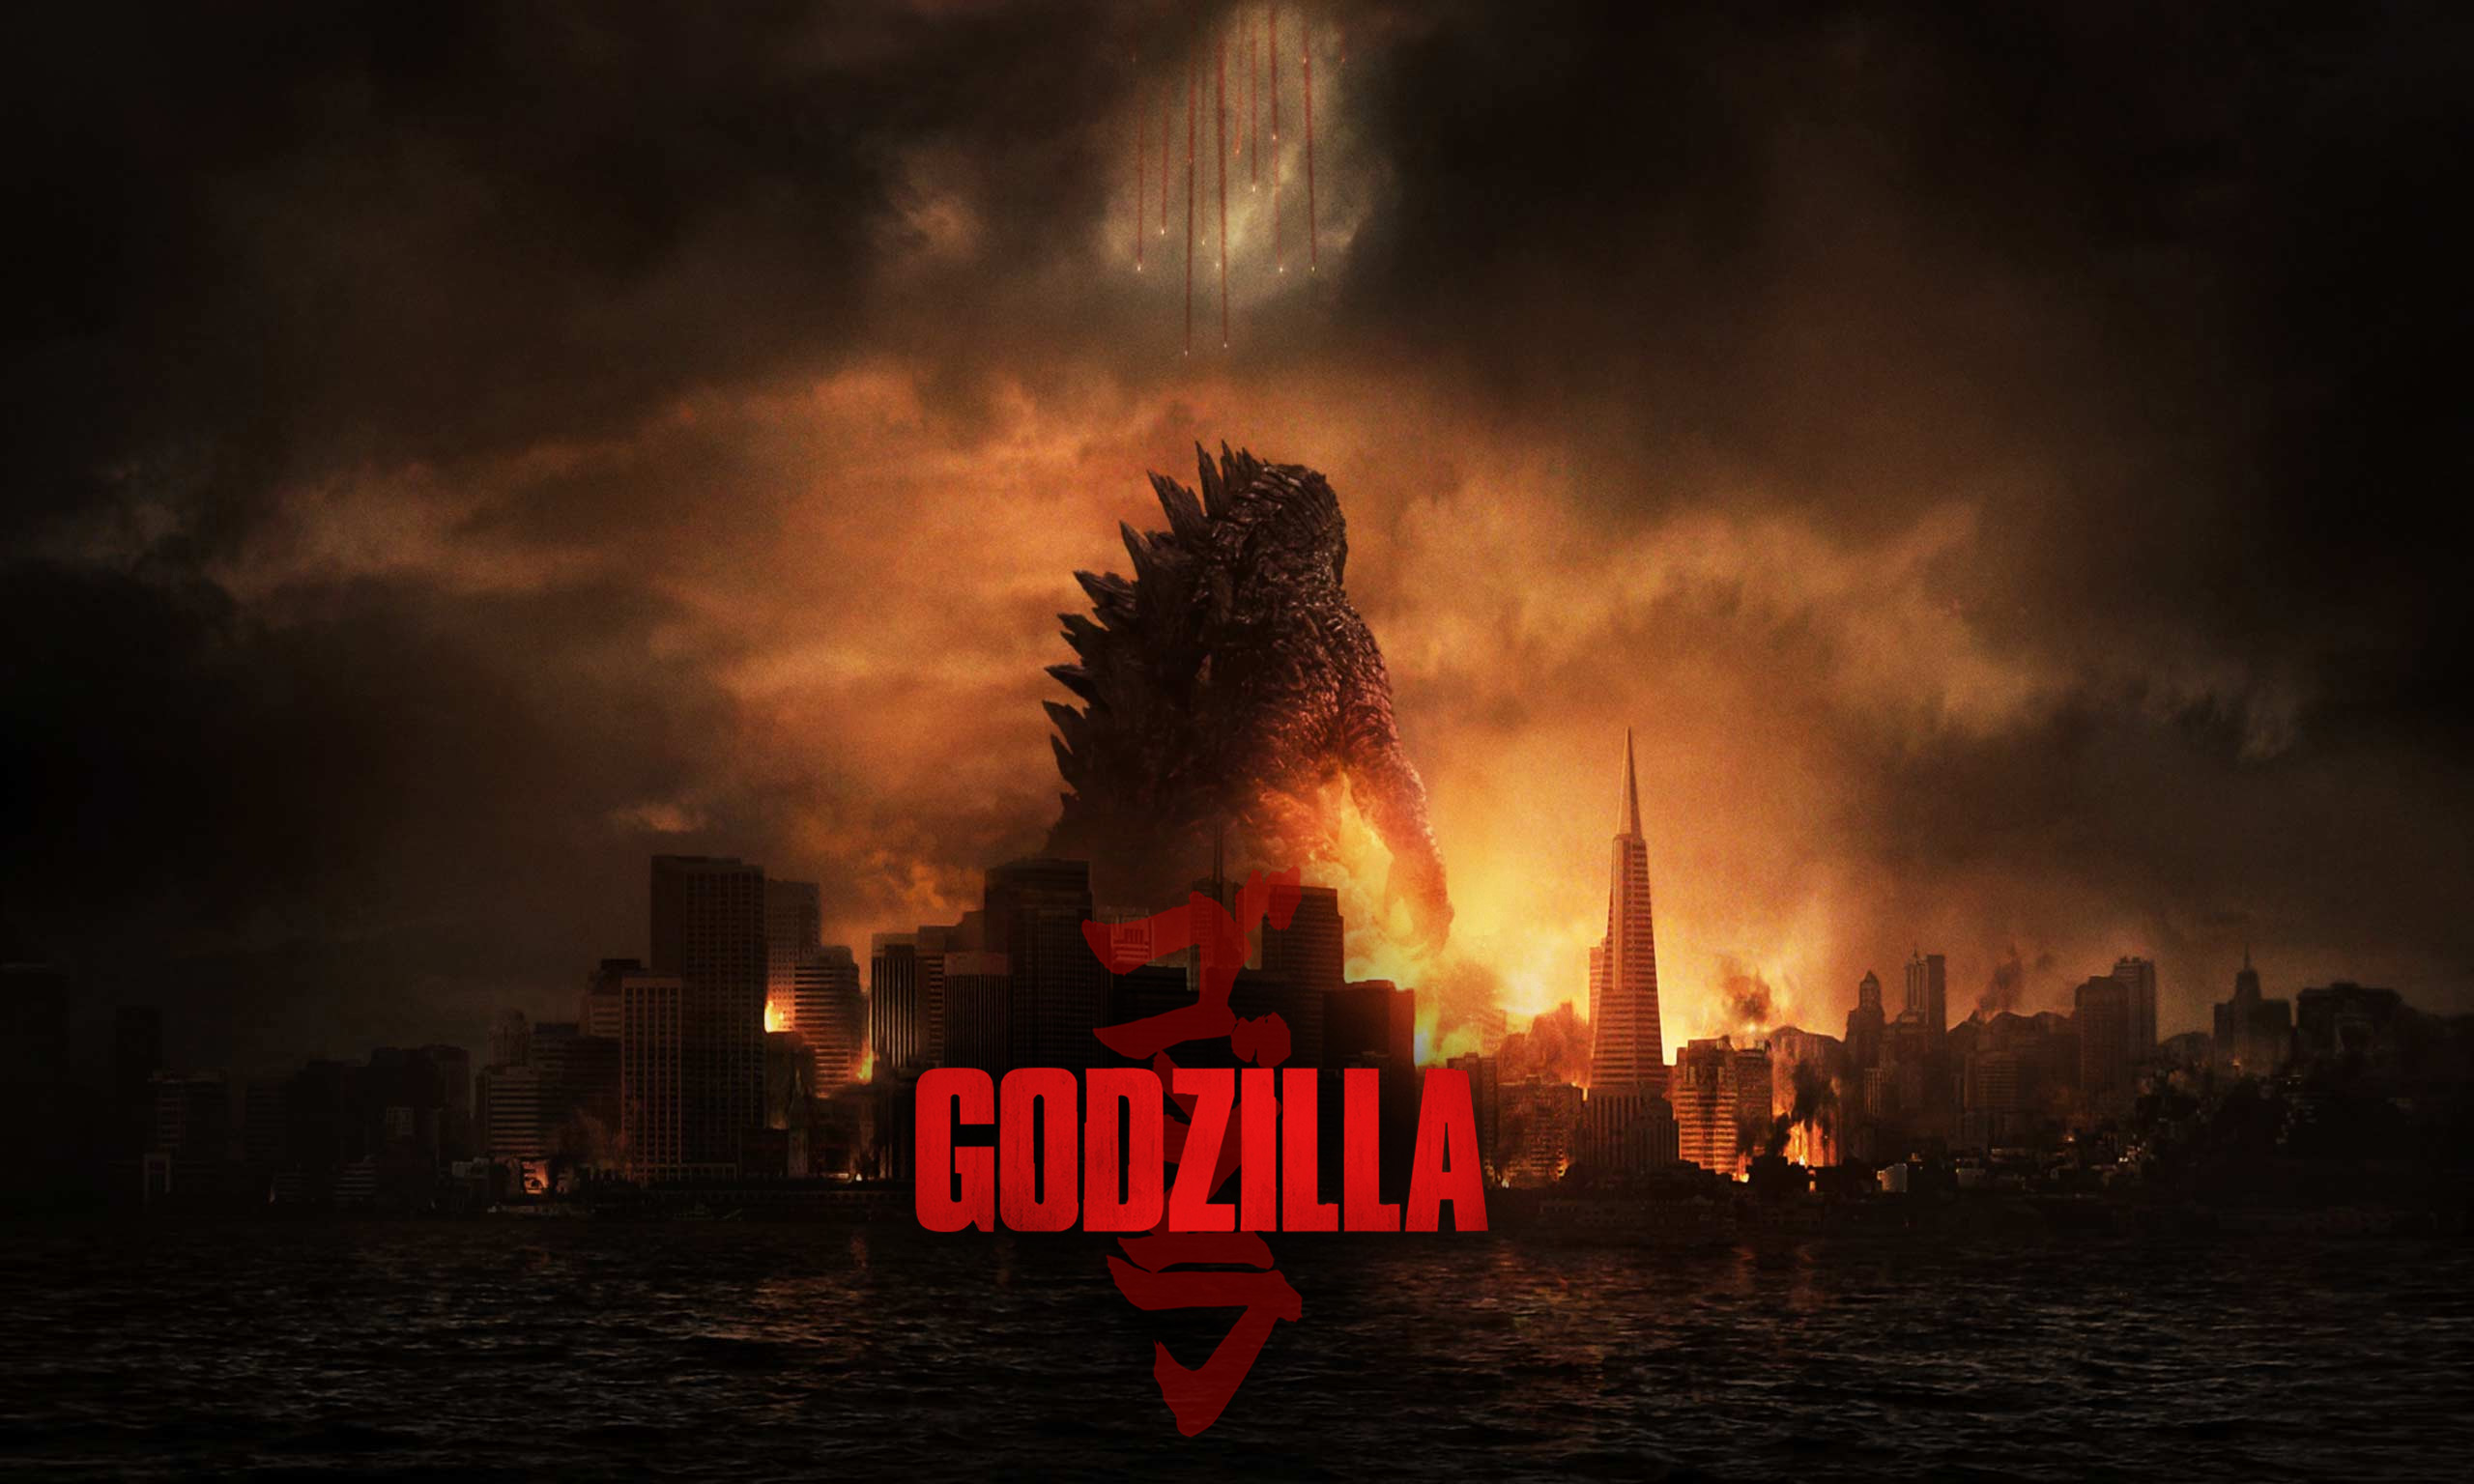 wallpaper godzilla 2014 pictures to pin on pinterest